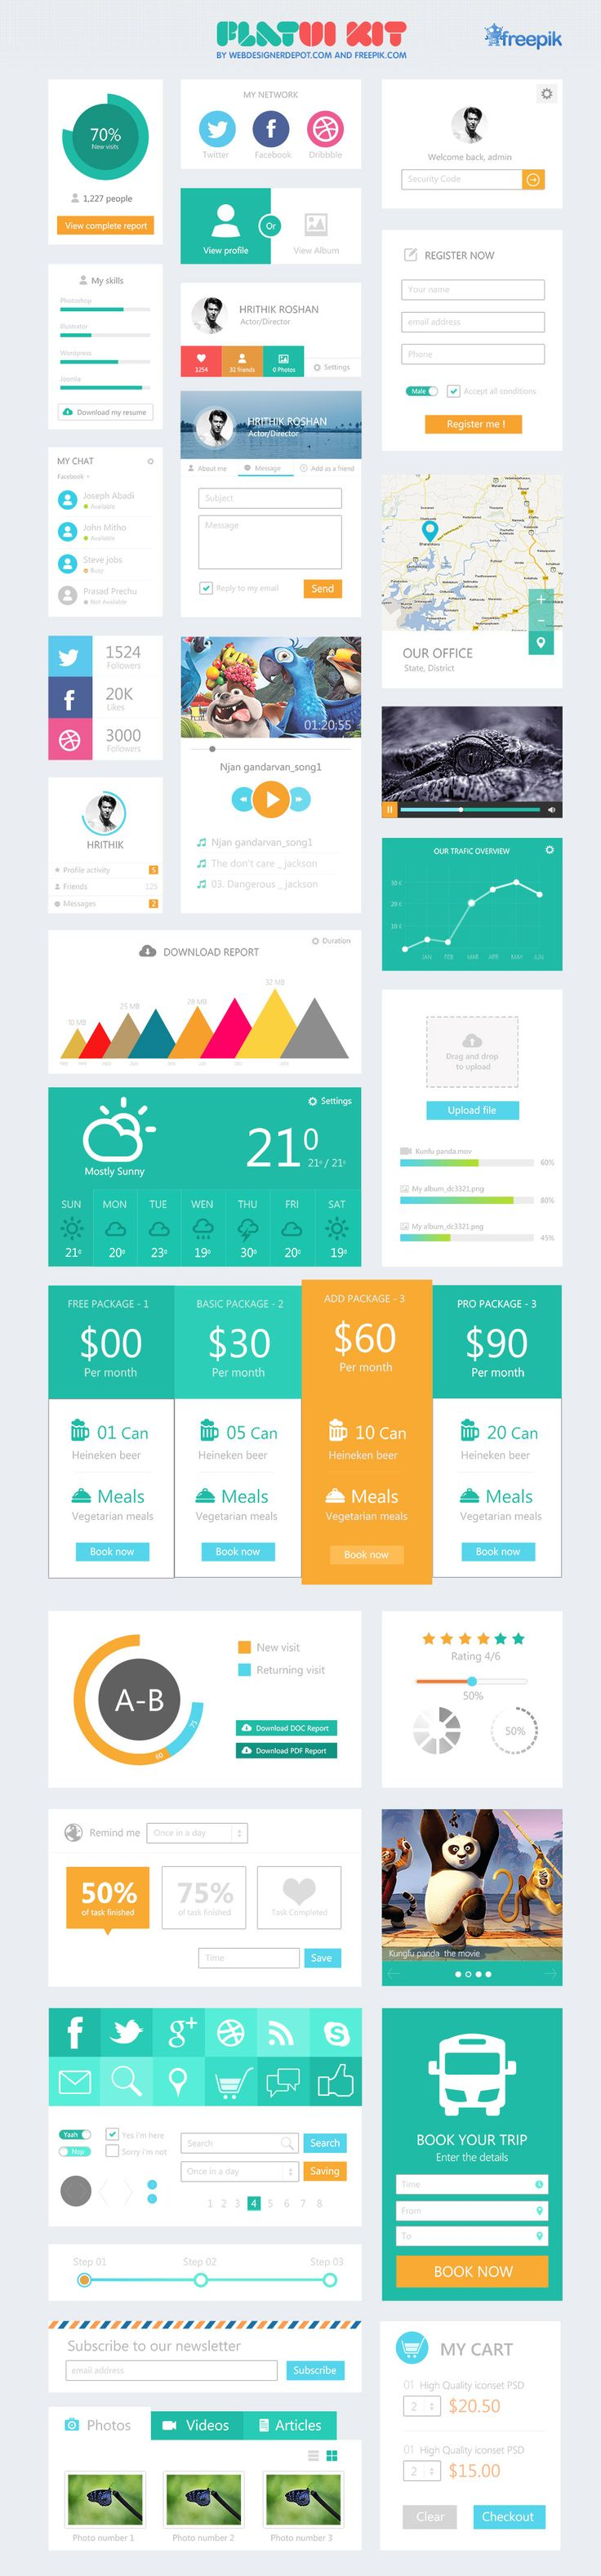 #UI #flat #design A free flat UI kit designed especially for Webdesigner Depot by Freepik. As you know, Freepik.com is a leading search engine that indexes vectors, PSDs and photos free for personal and commercial use. It's a great resource for graphic designers as their engine locates free graphic content and it displays the results in an orderly layout for easy access.